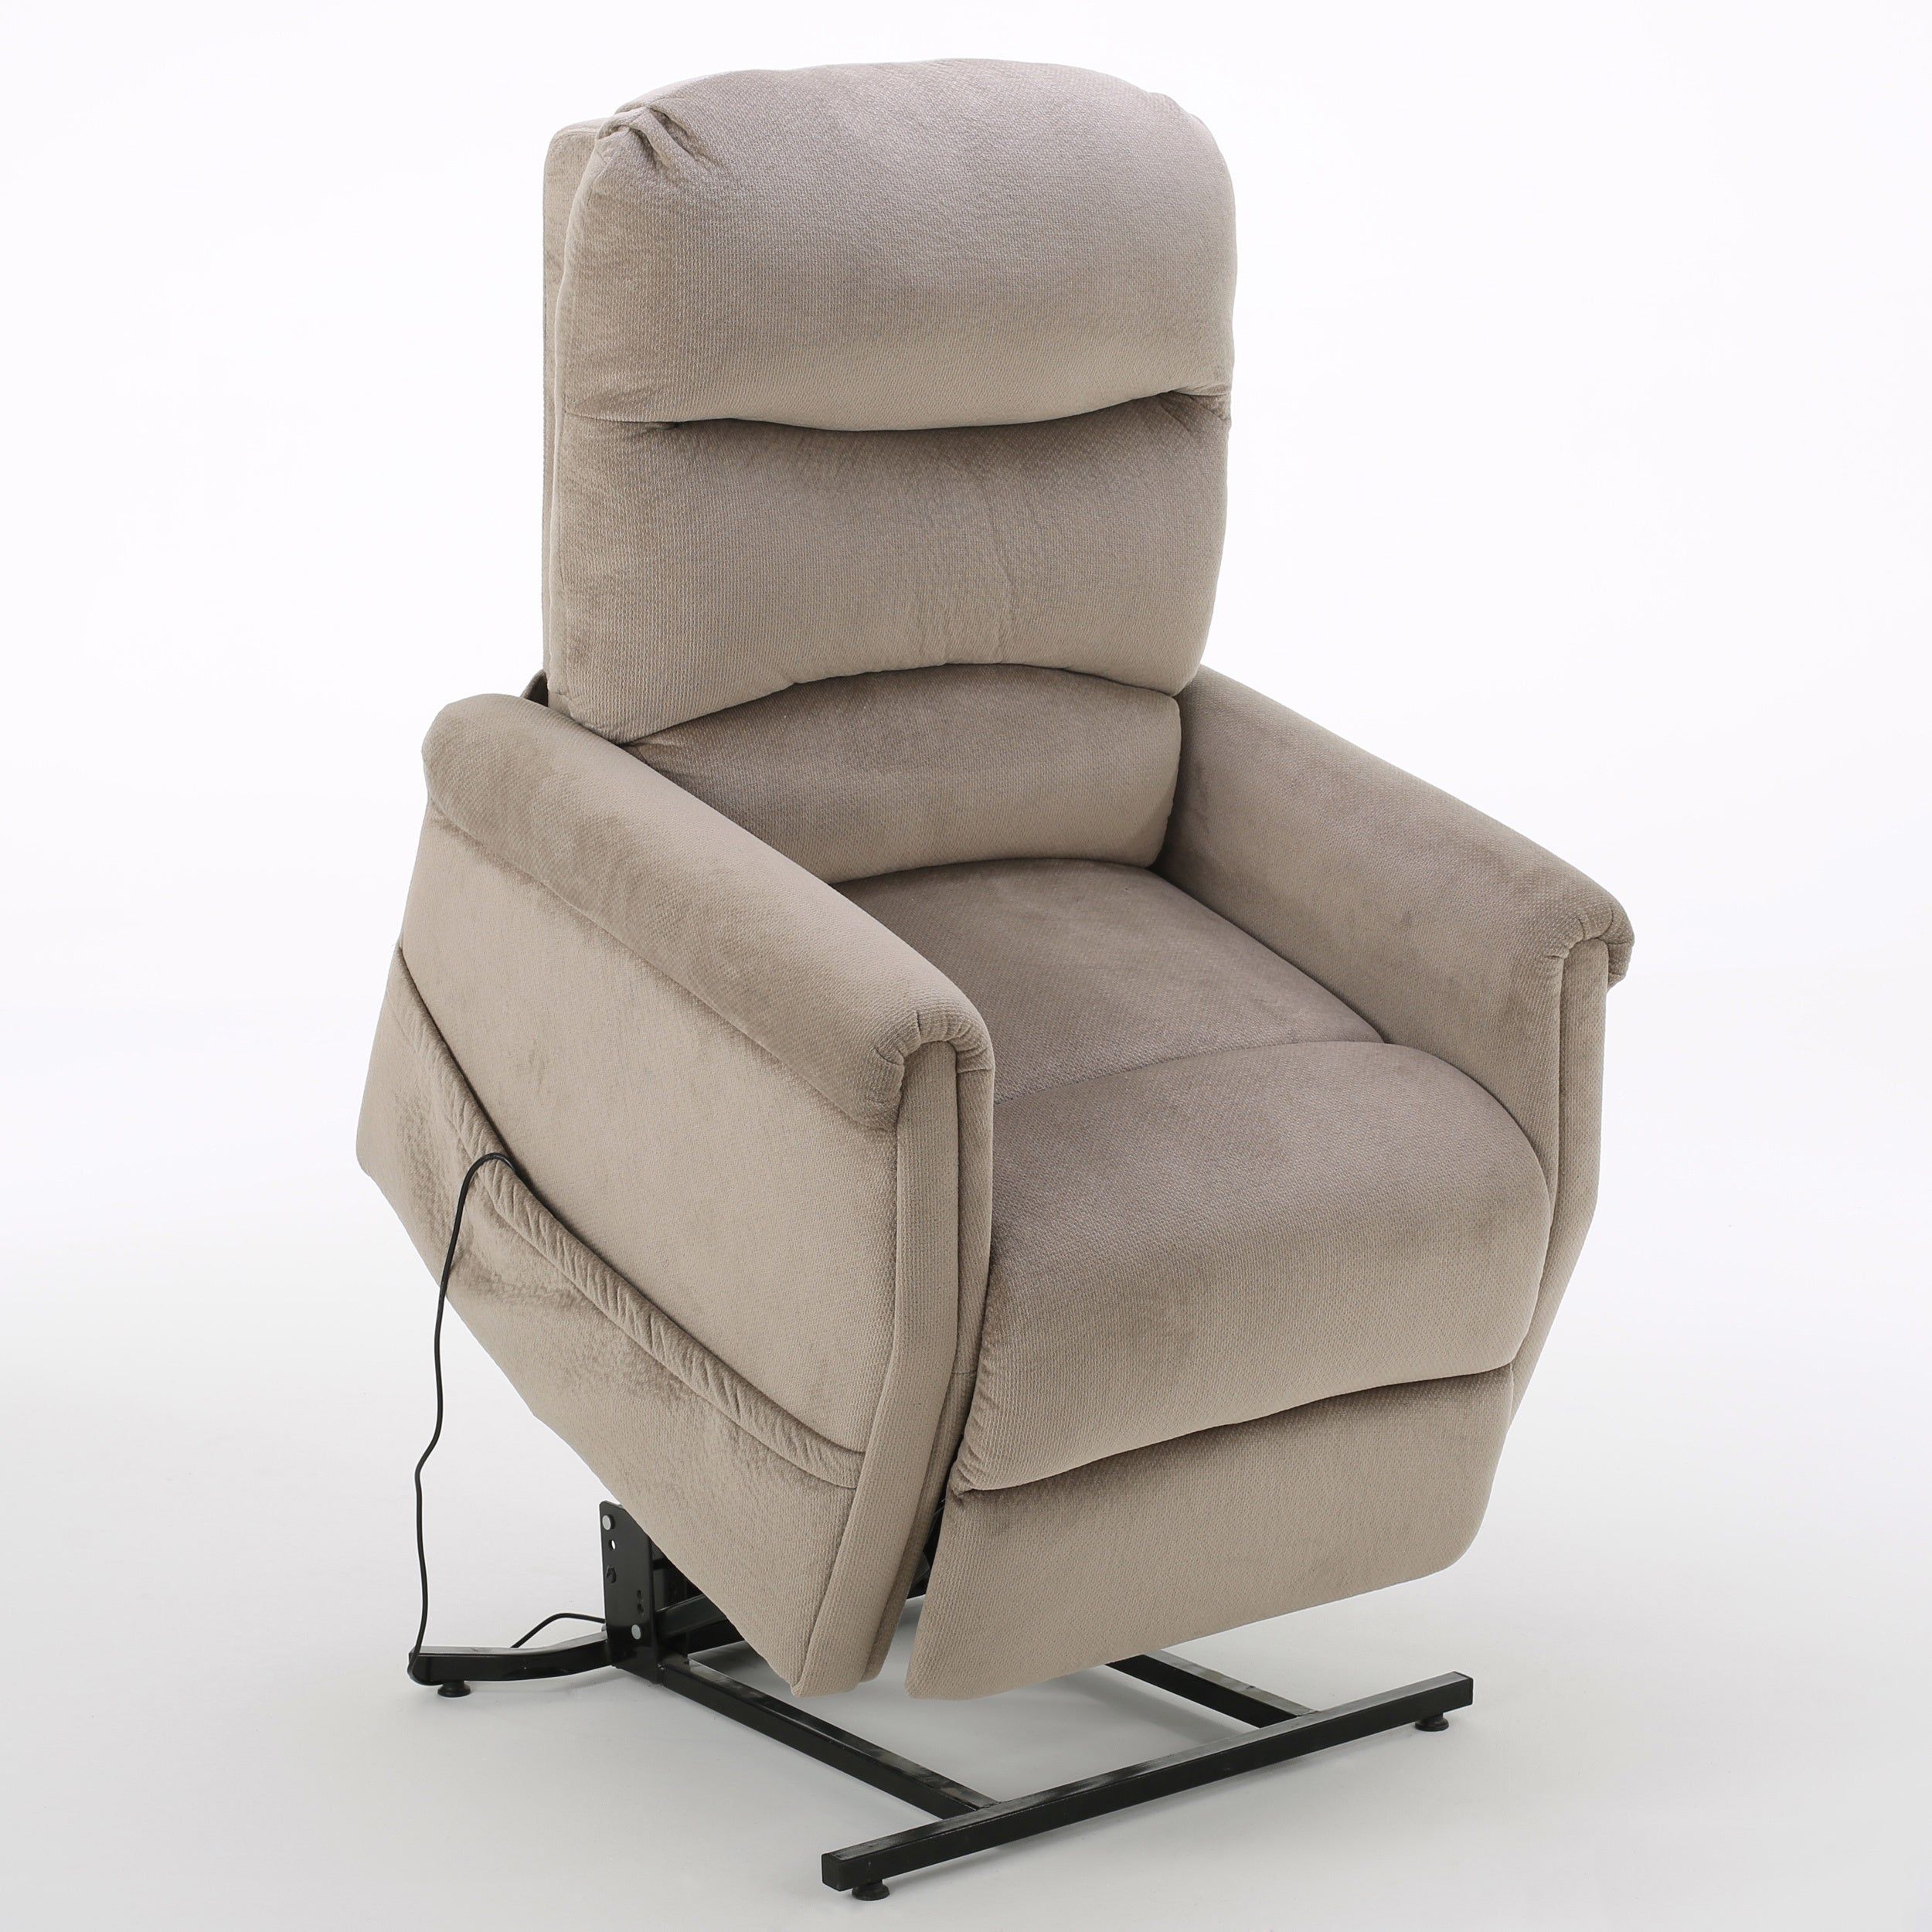 Larissa Fabric Recliner Lift Club Chair by Christopher Kn...